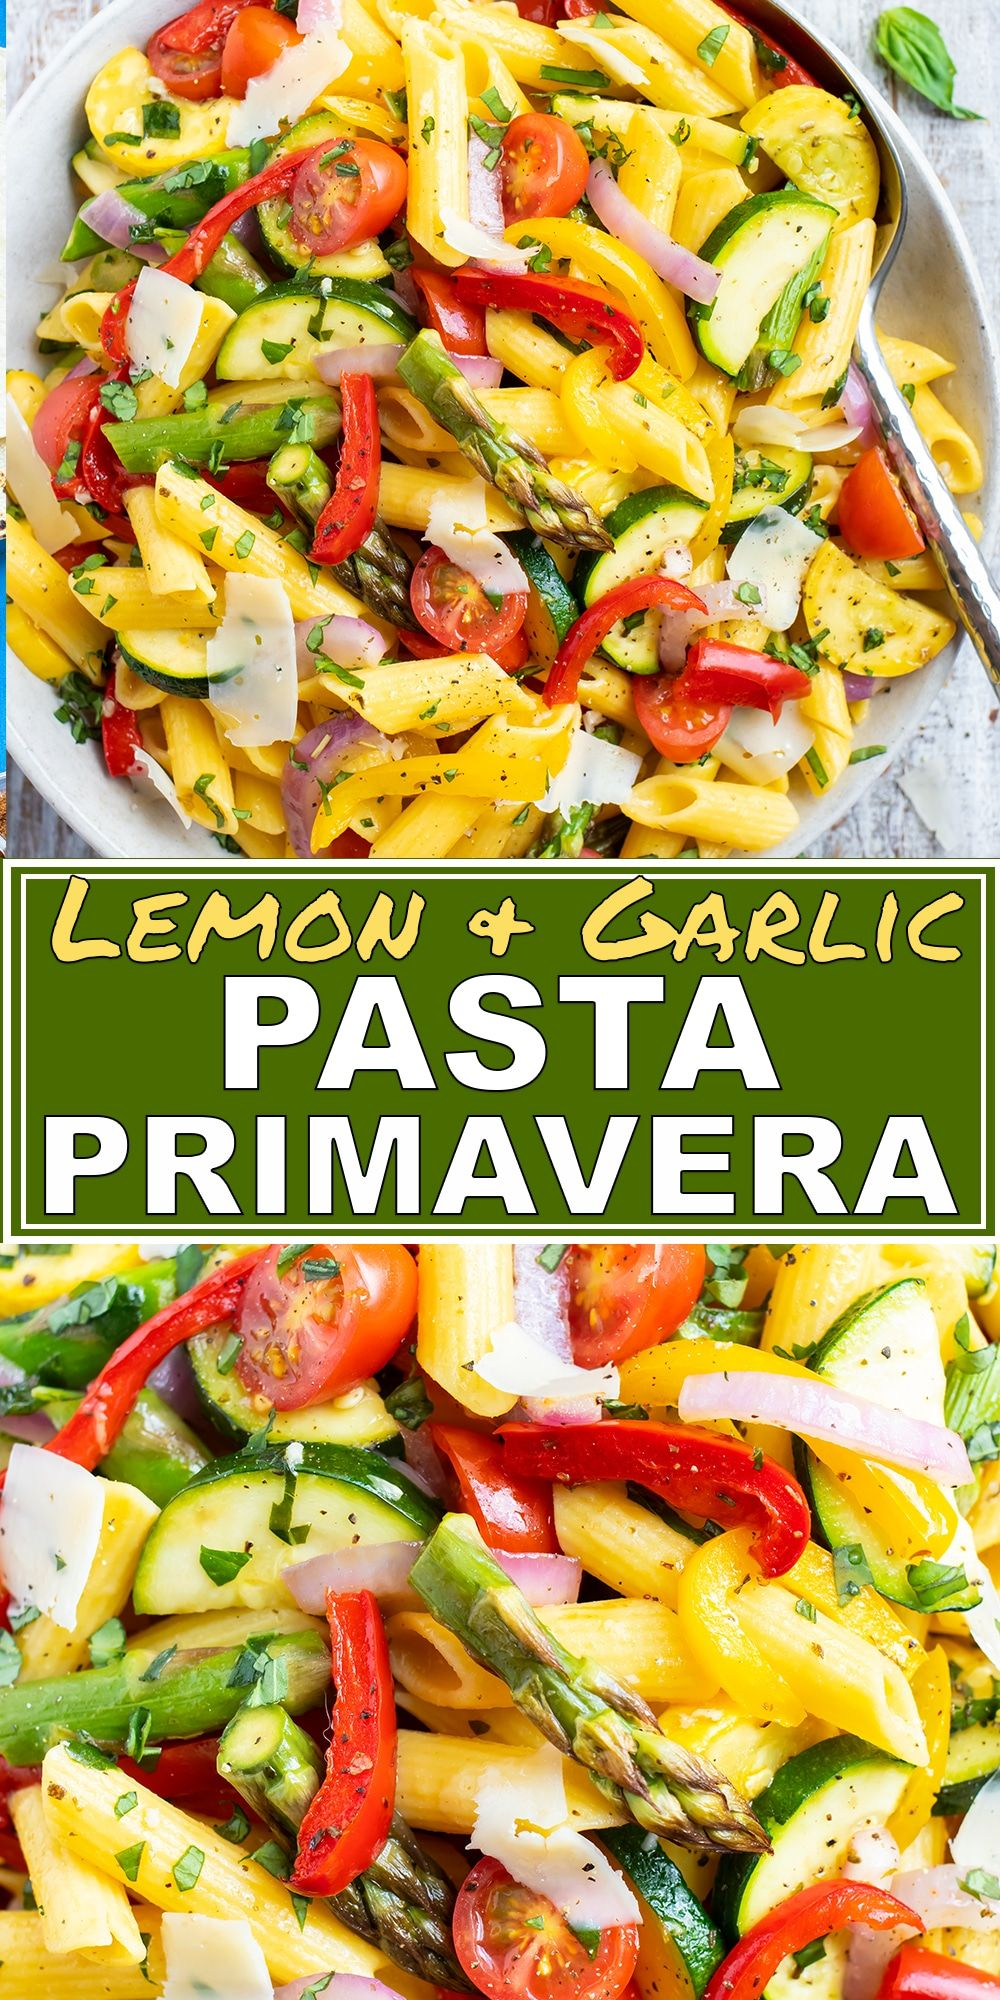 Pasta Primavera with Lemon Garlic Butter images